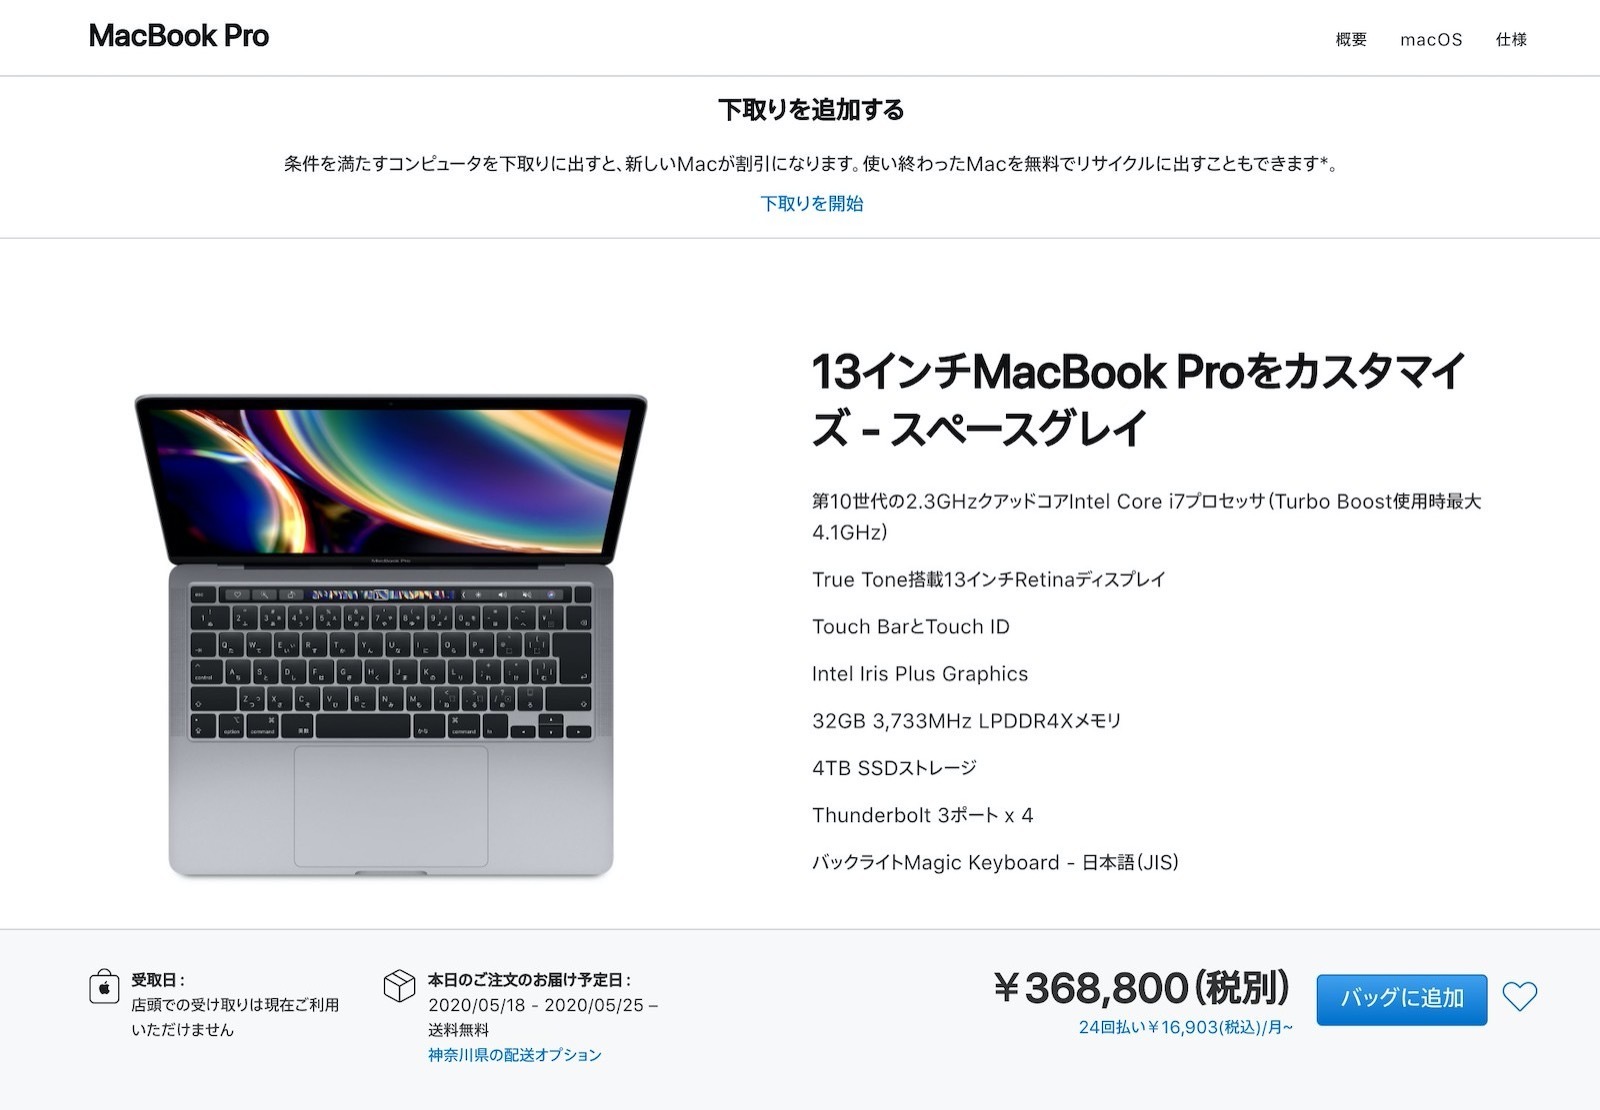 Macbook rpo 2020 full spec model